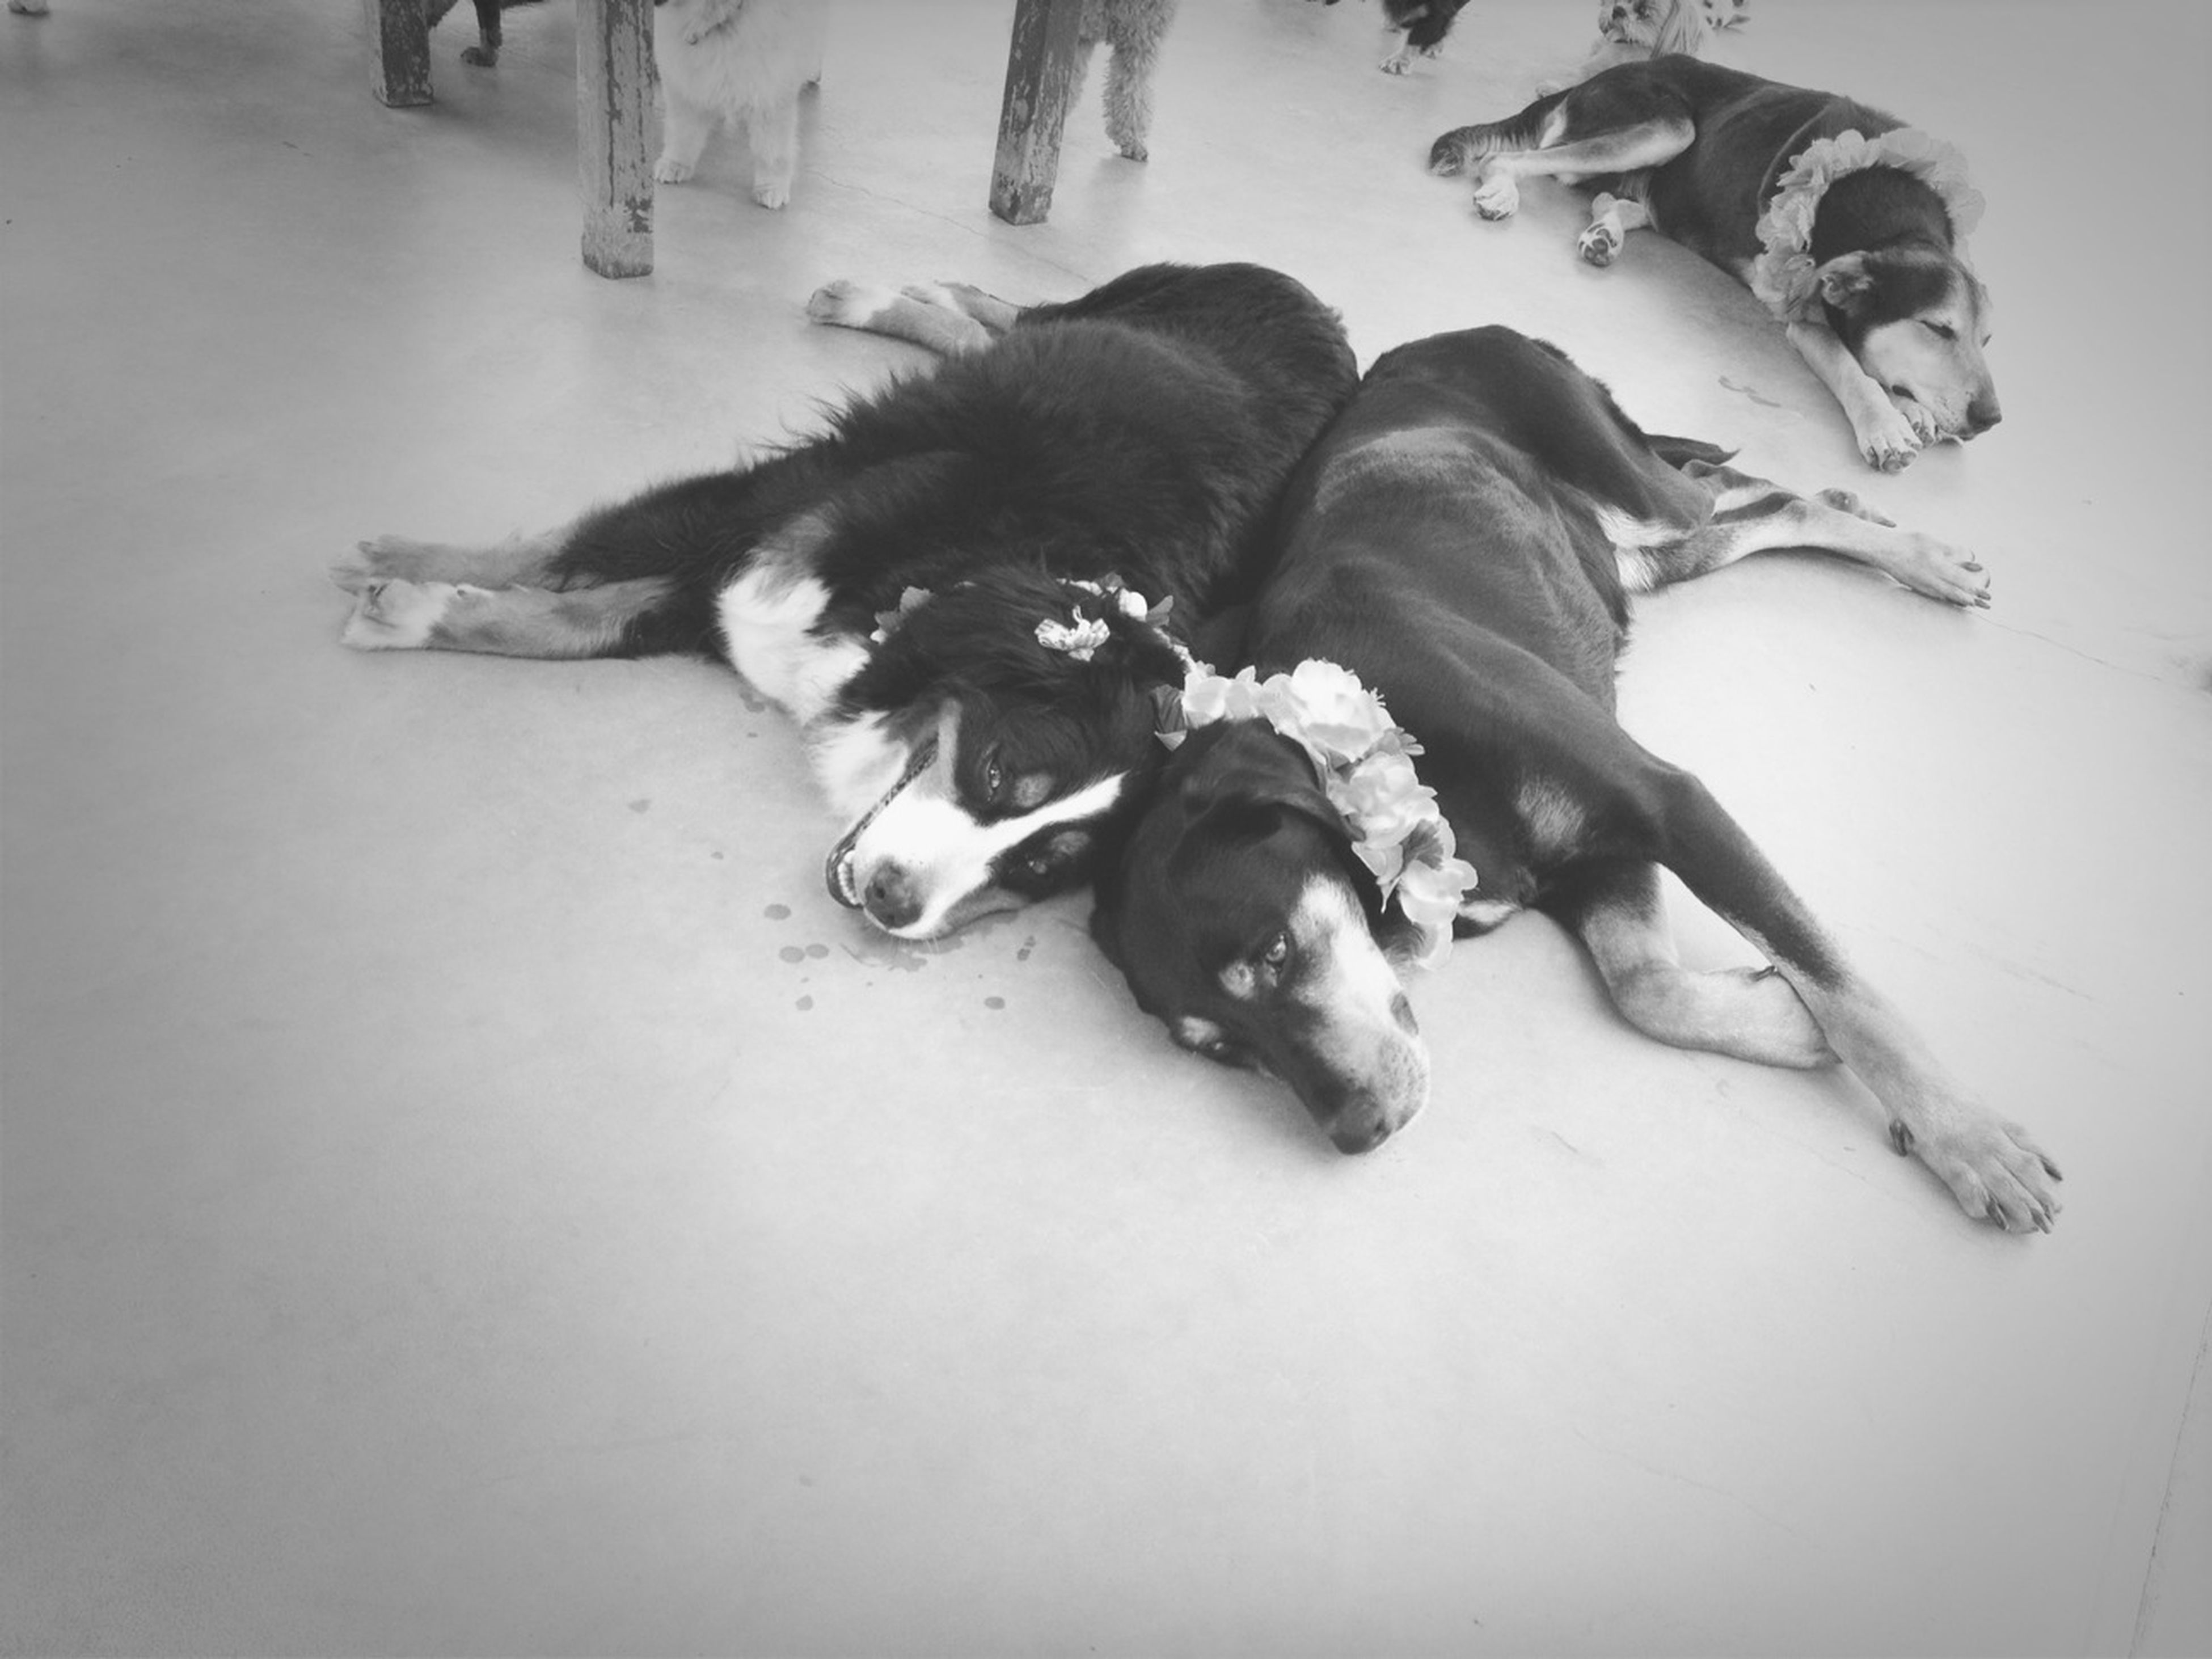 animal themes, high angle view, pets, domestic animals, dog, mammal, one animal, togetherness, indoors, two animals, snow, cold temperature, winter, dead animal, young animal, directly above, wildlife, relaxation, day